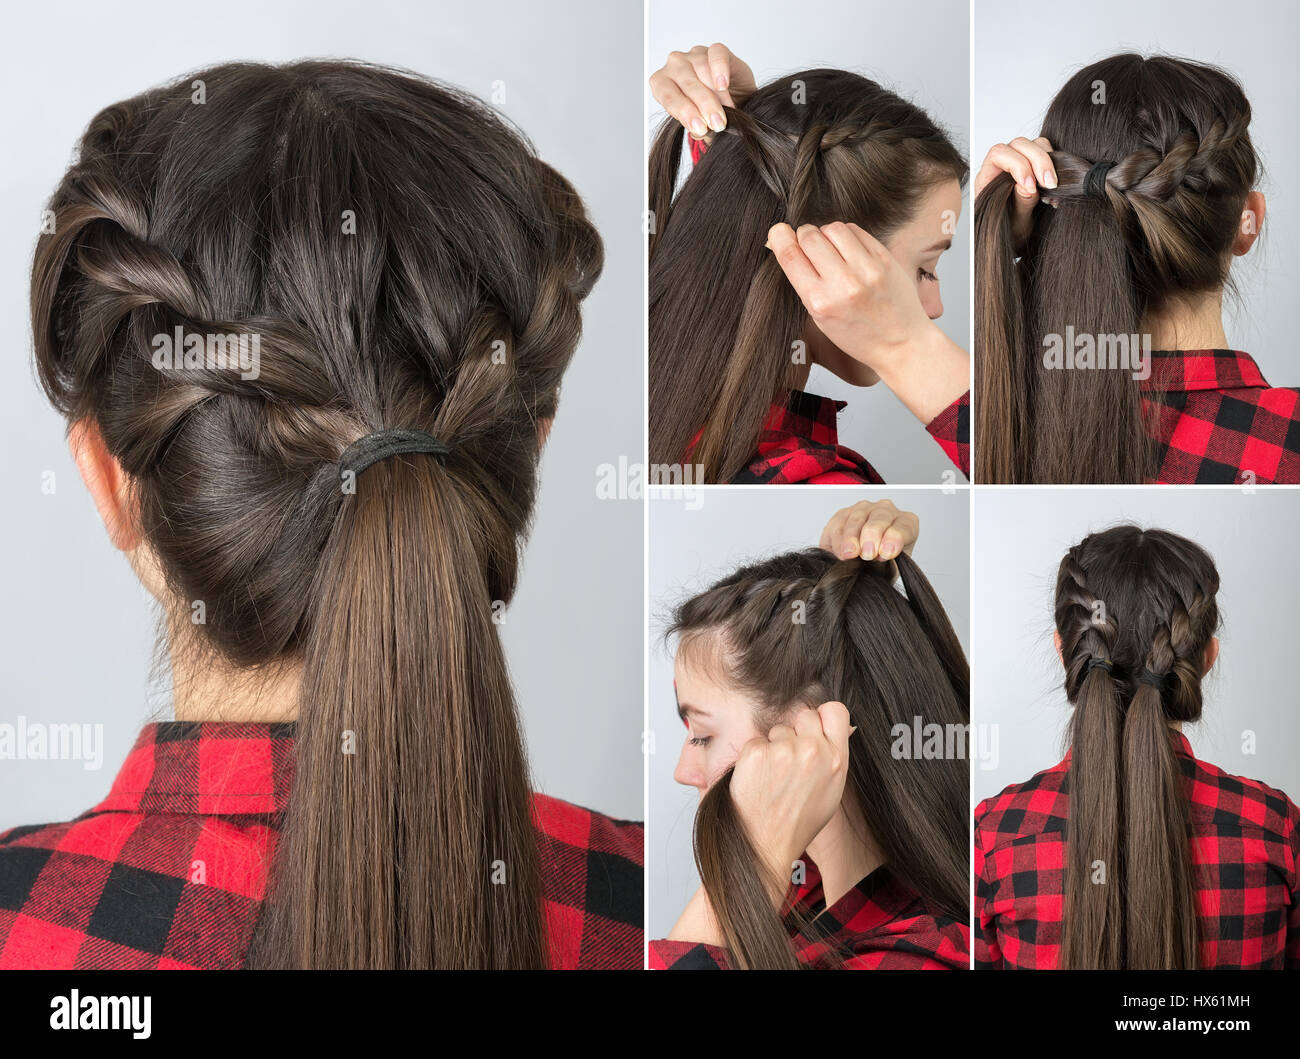 Simple Twisted Hairstyle Tutorial Step By Step Easy Hairstyle For